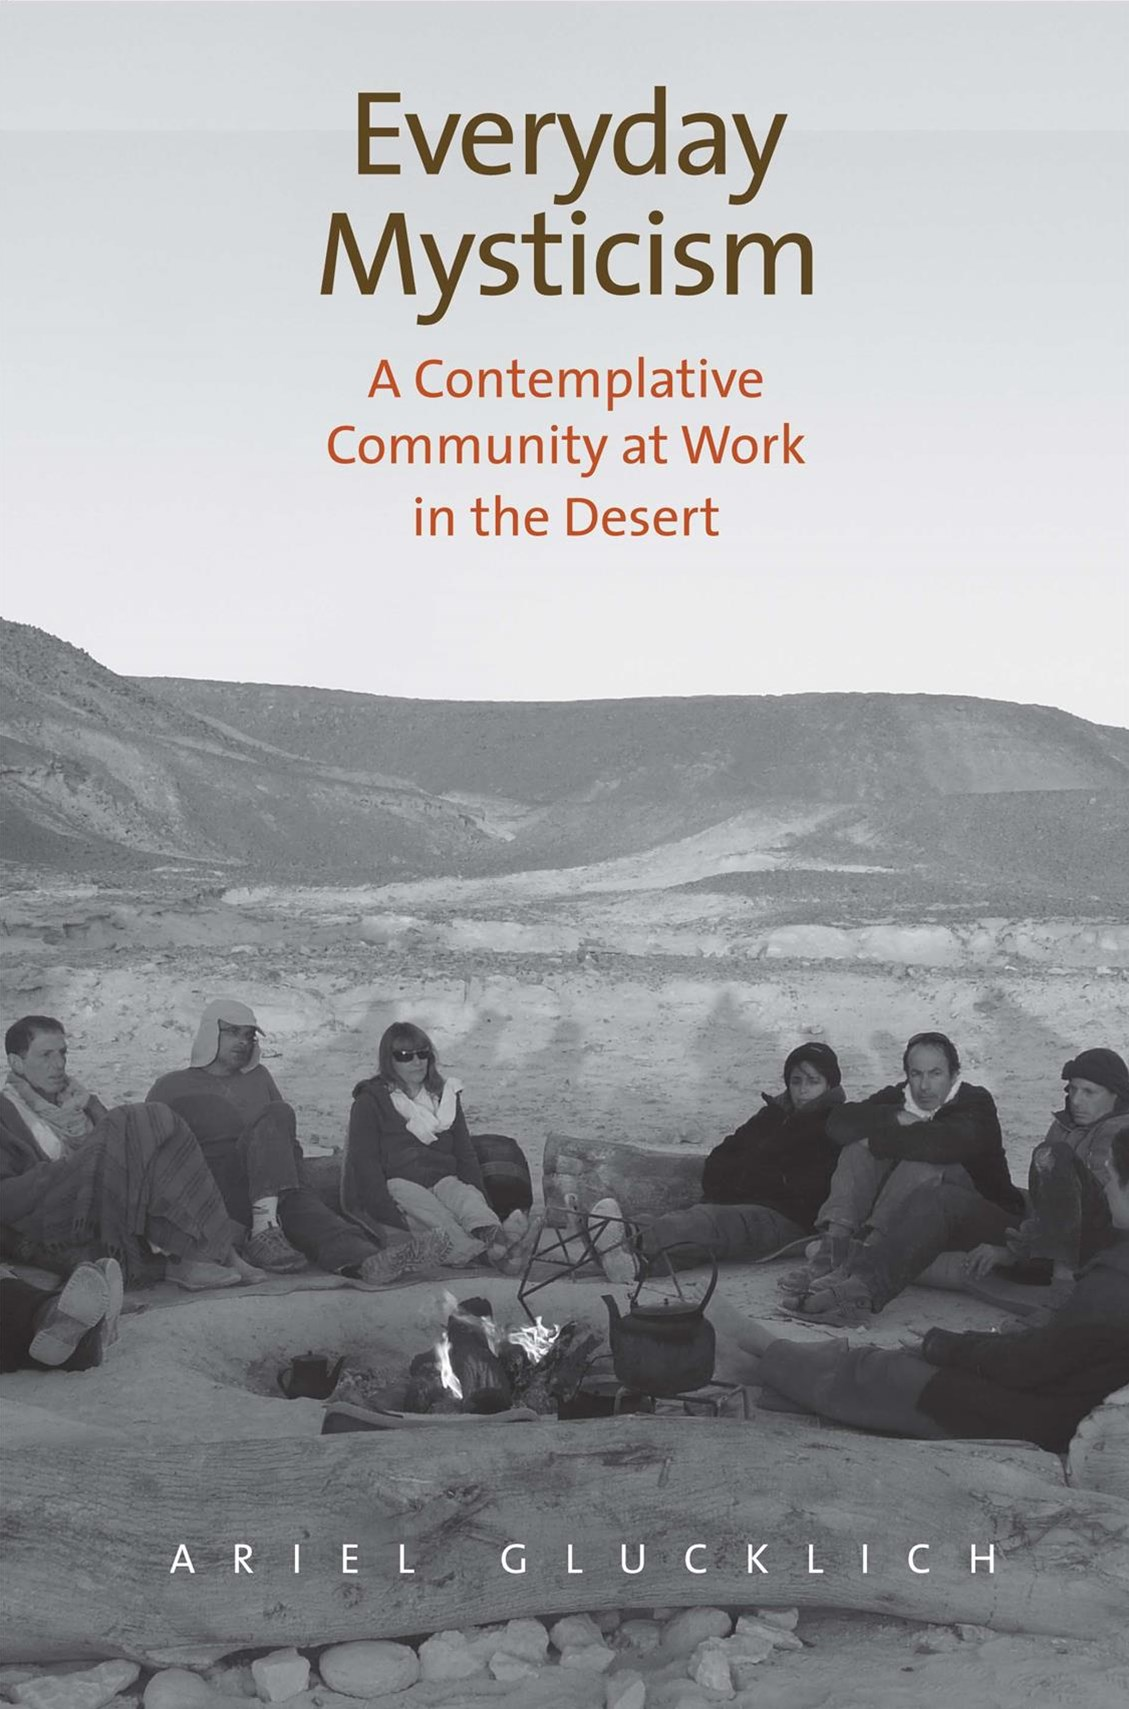 Everyday Mysticism: A Contemplative Community at Work in the Desert